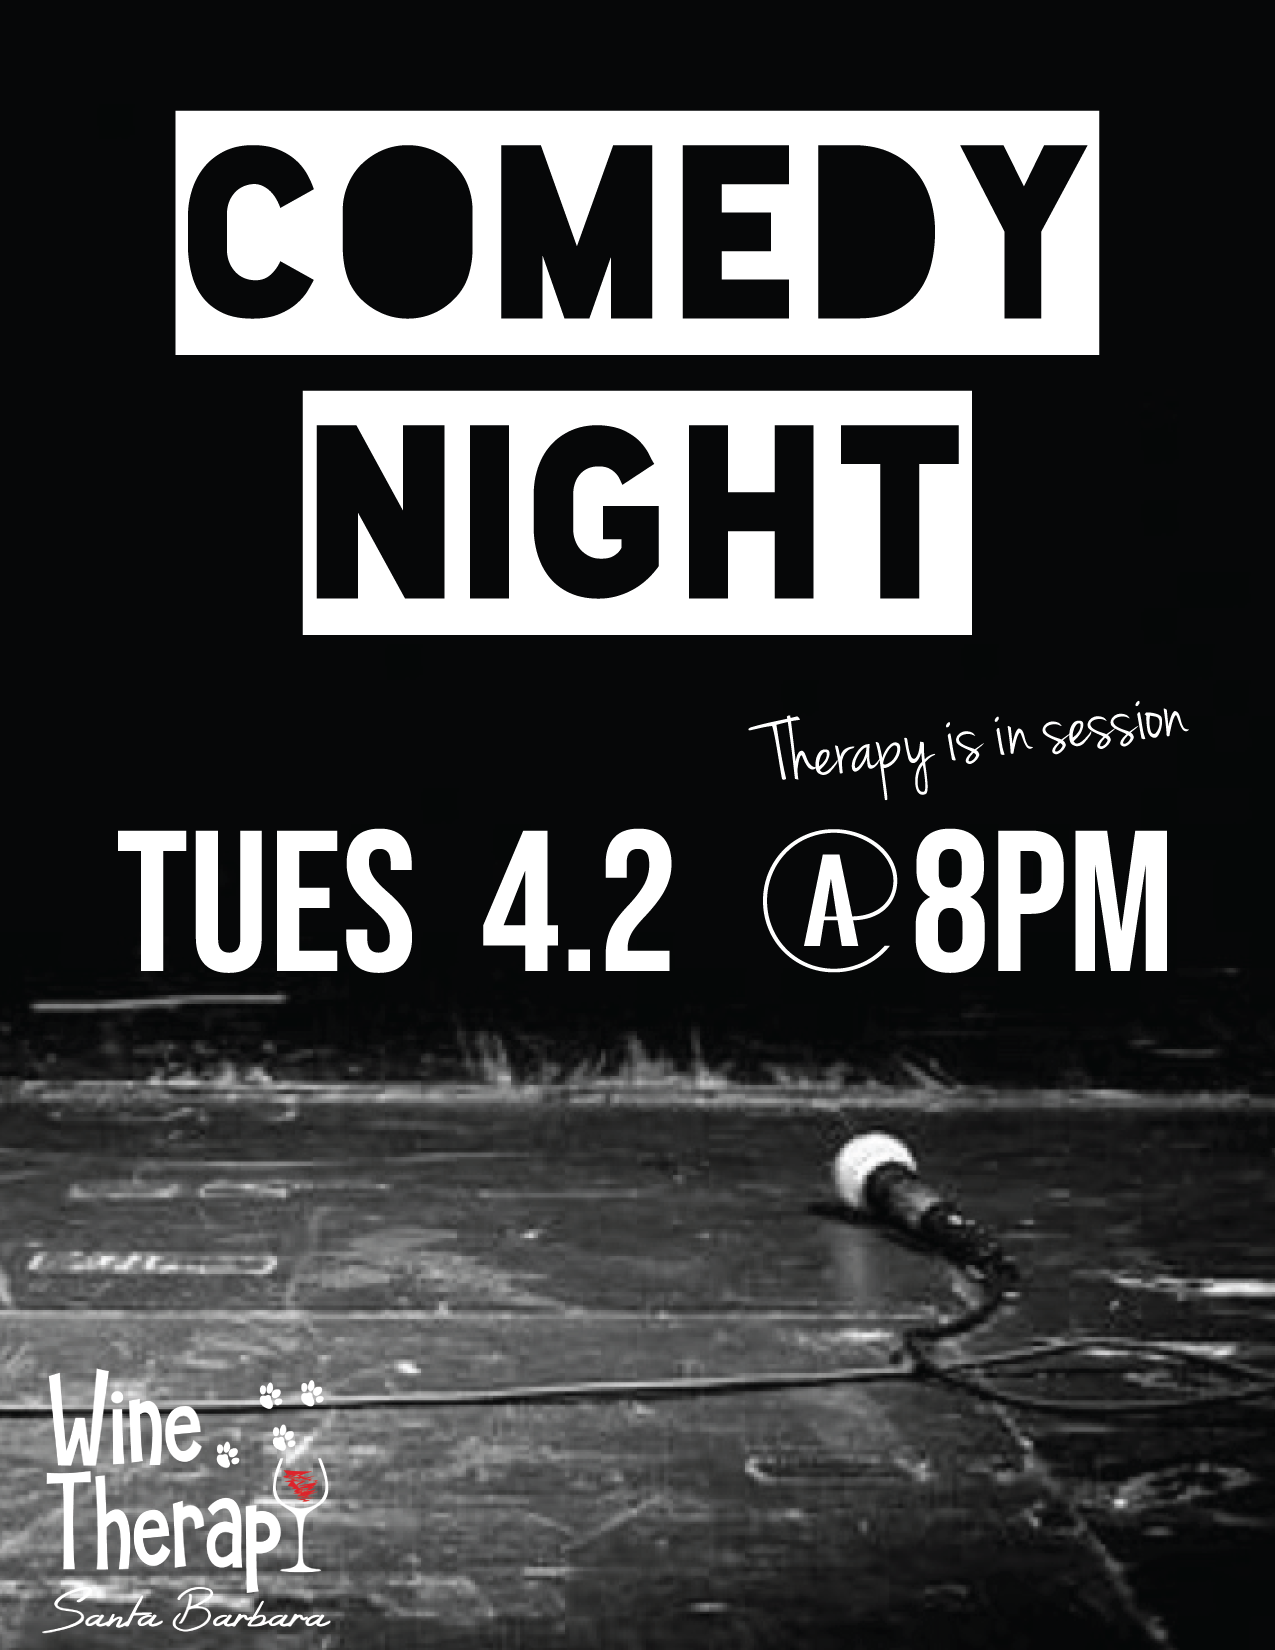 Comedy night flyer-01.png